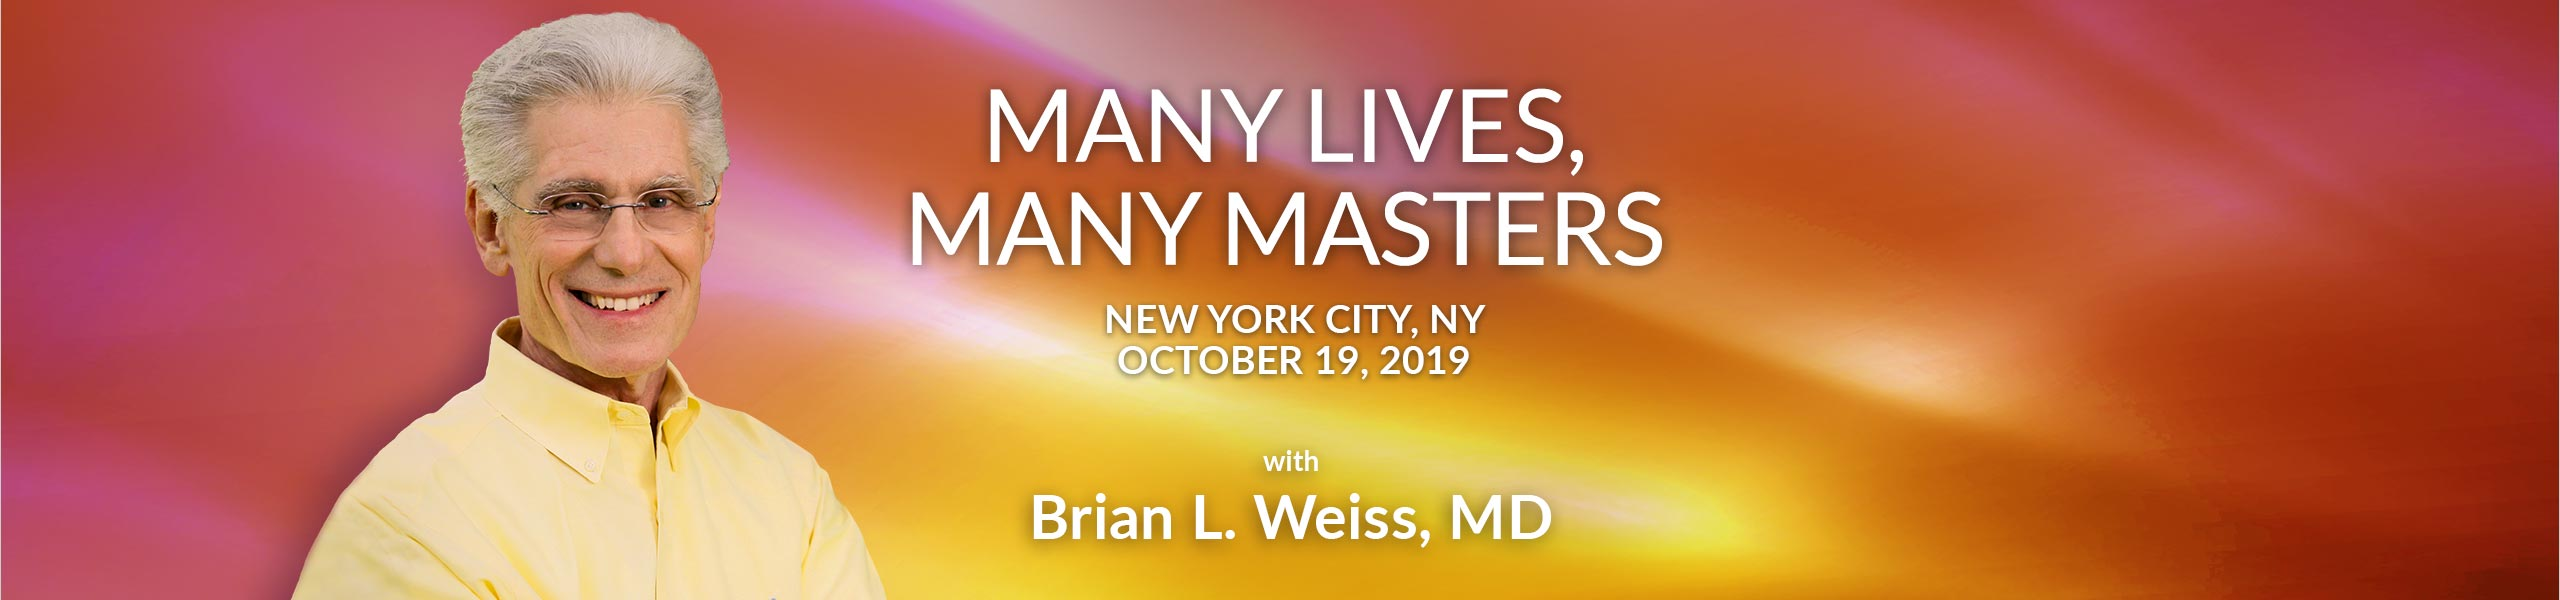 Many Lives, Many Masters - New York City